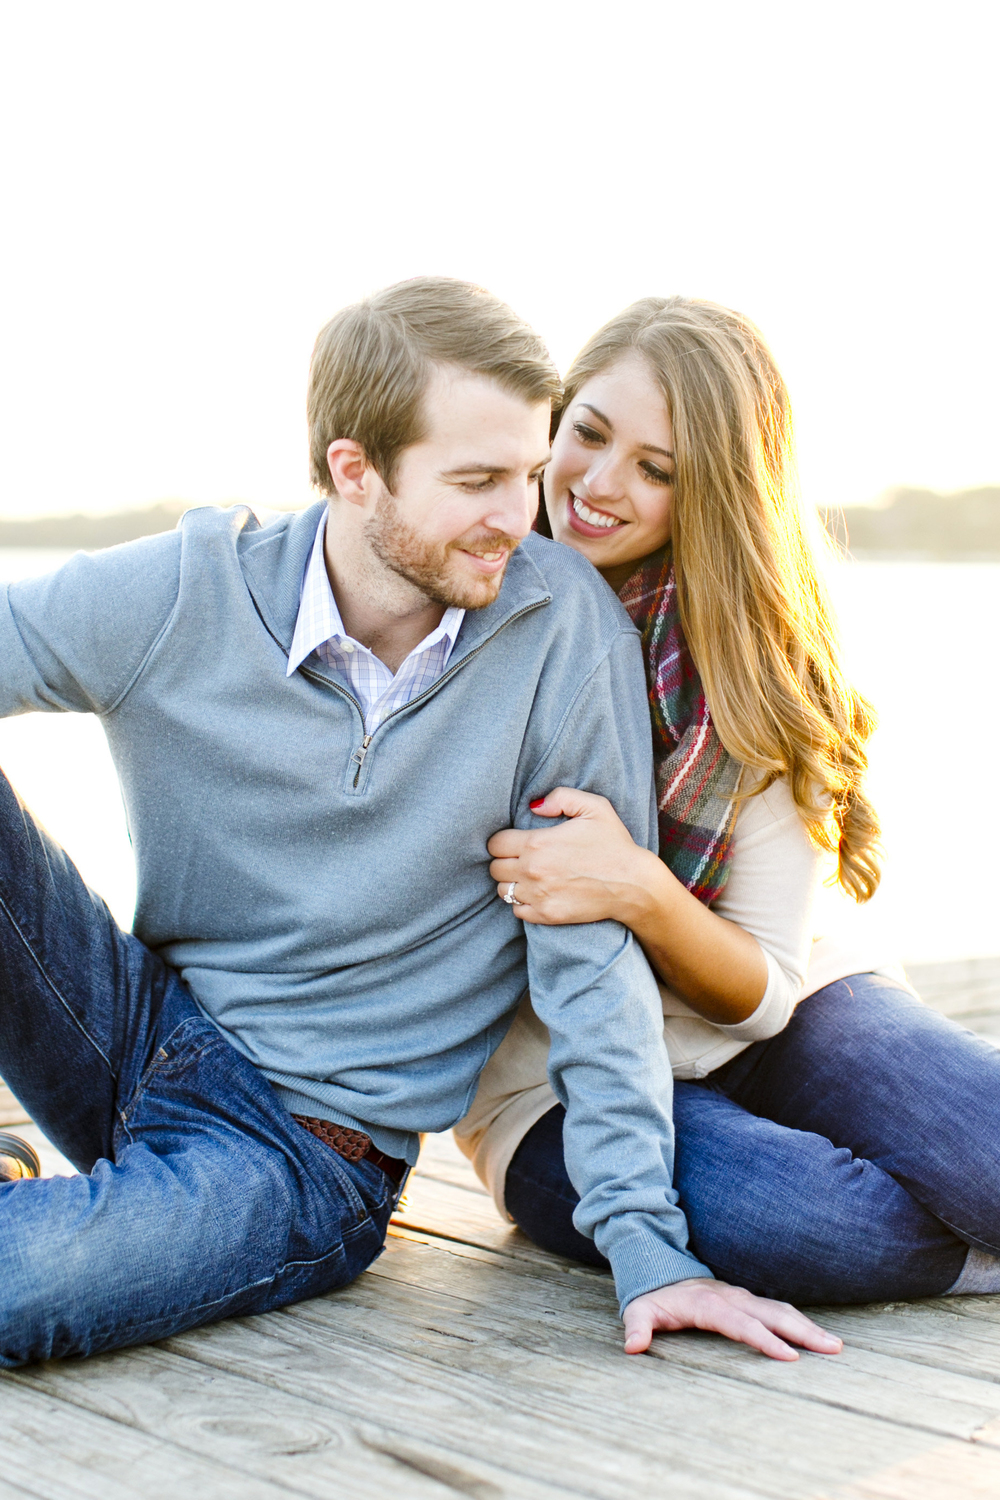 LAKESIDE ENGAGEMENTS: MORGAN + CHAD